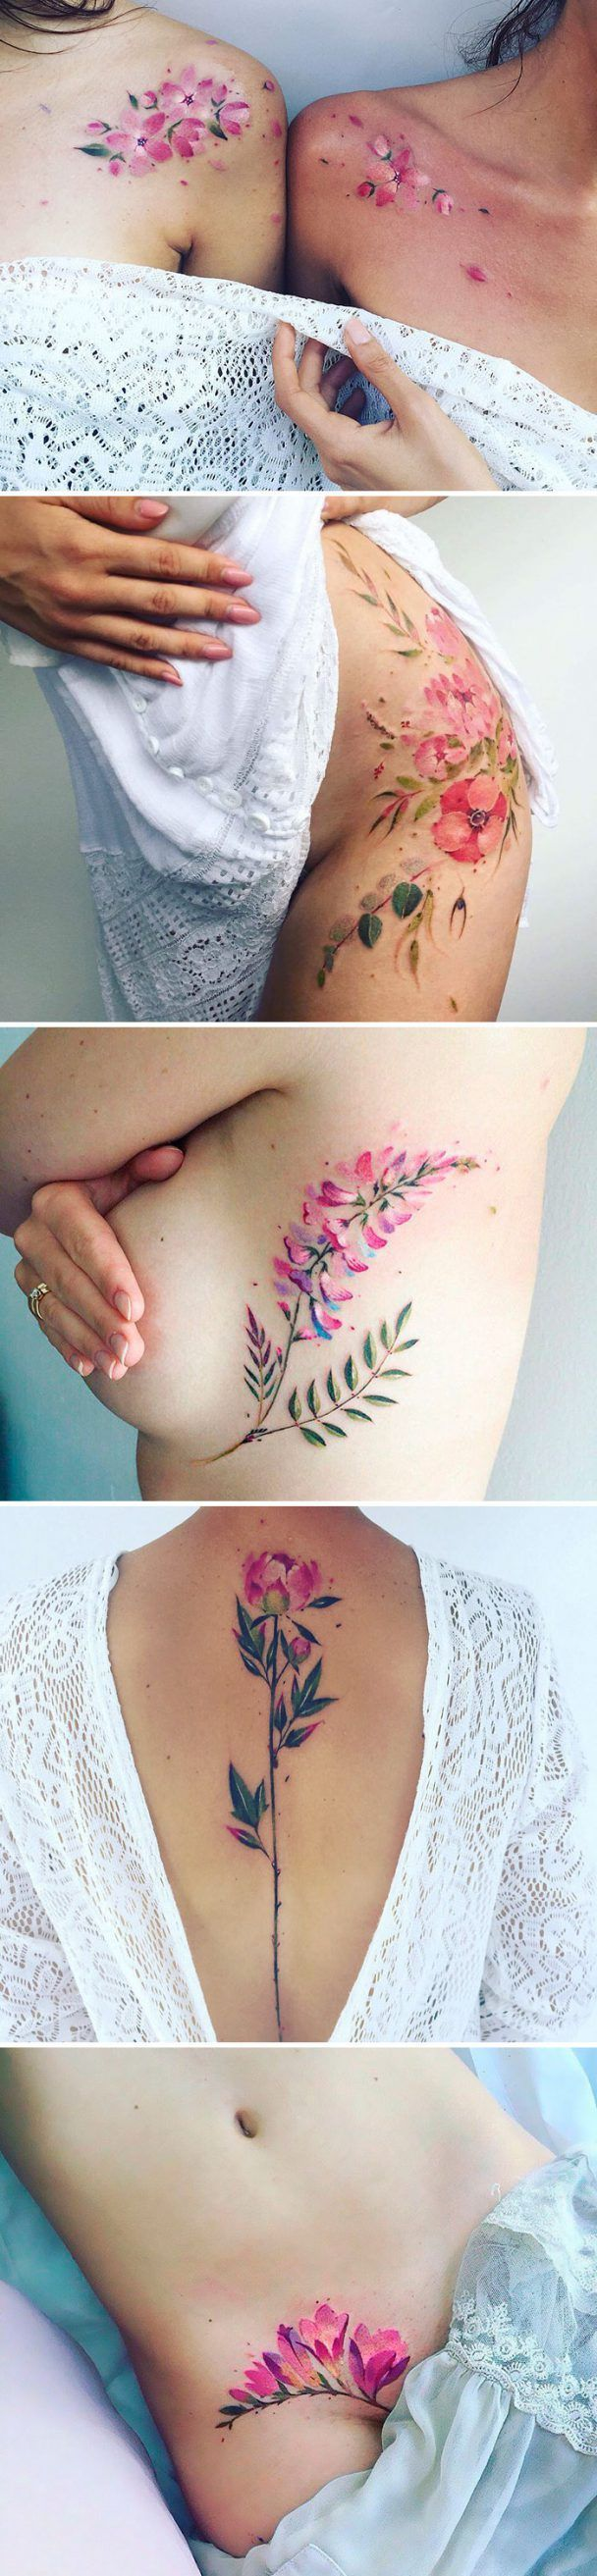 20 most beautiful floral tattoos for your inspiration beauty 20 most beautiful floral tattoos for your inspiration izmirmasajfo